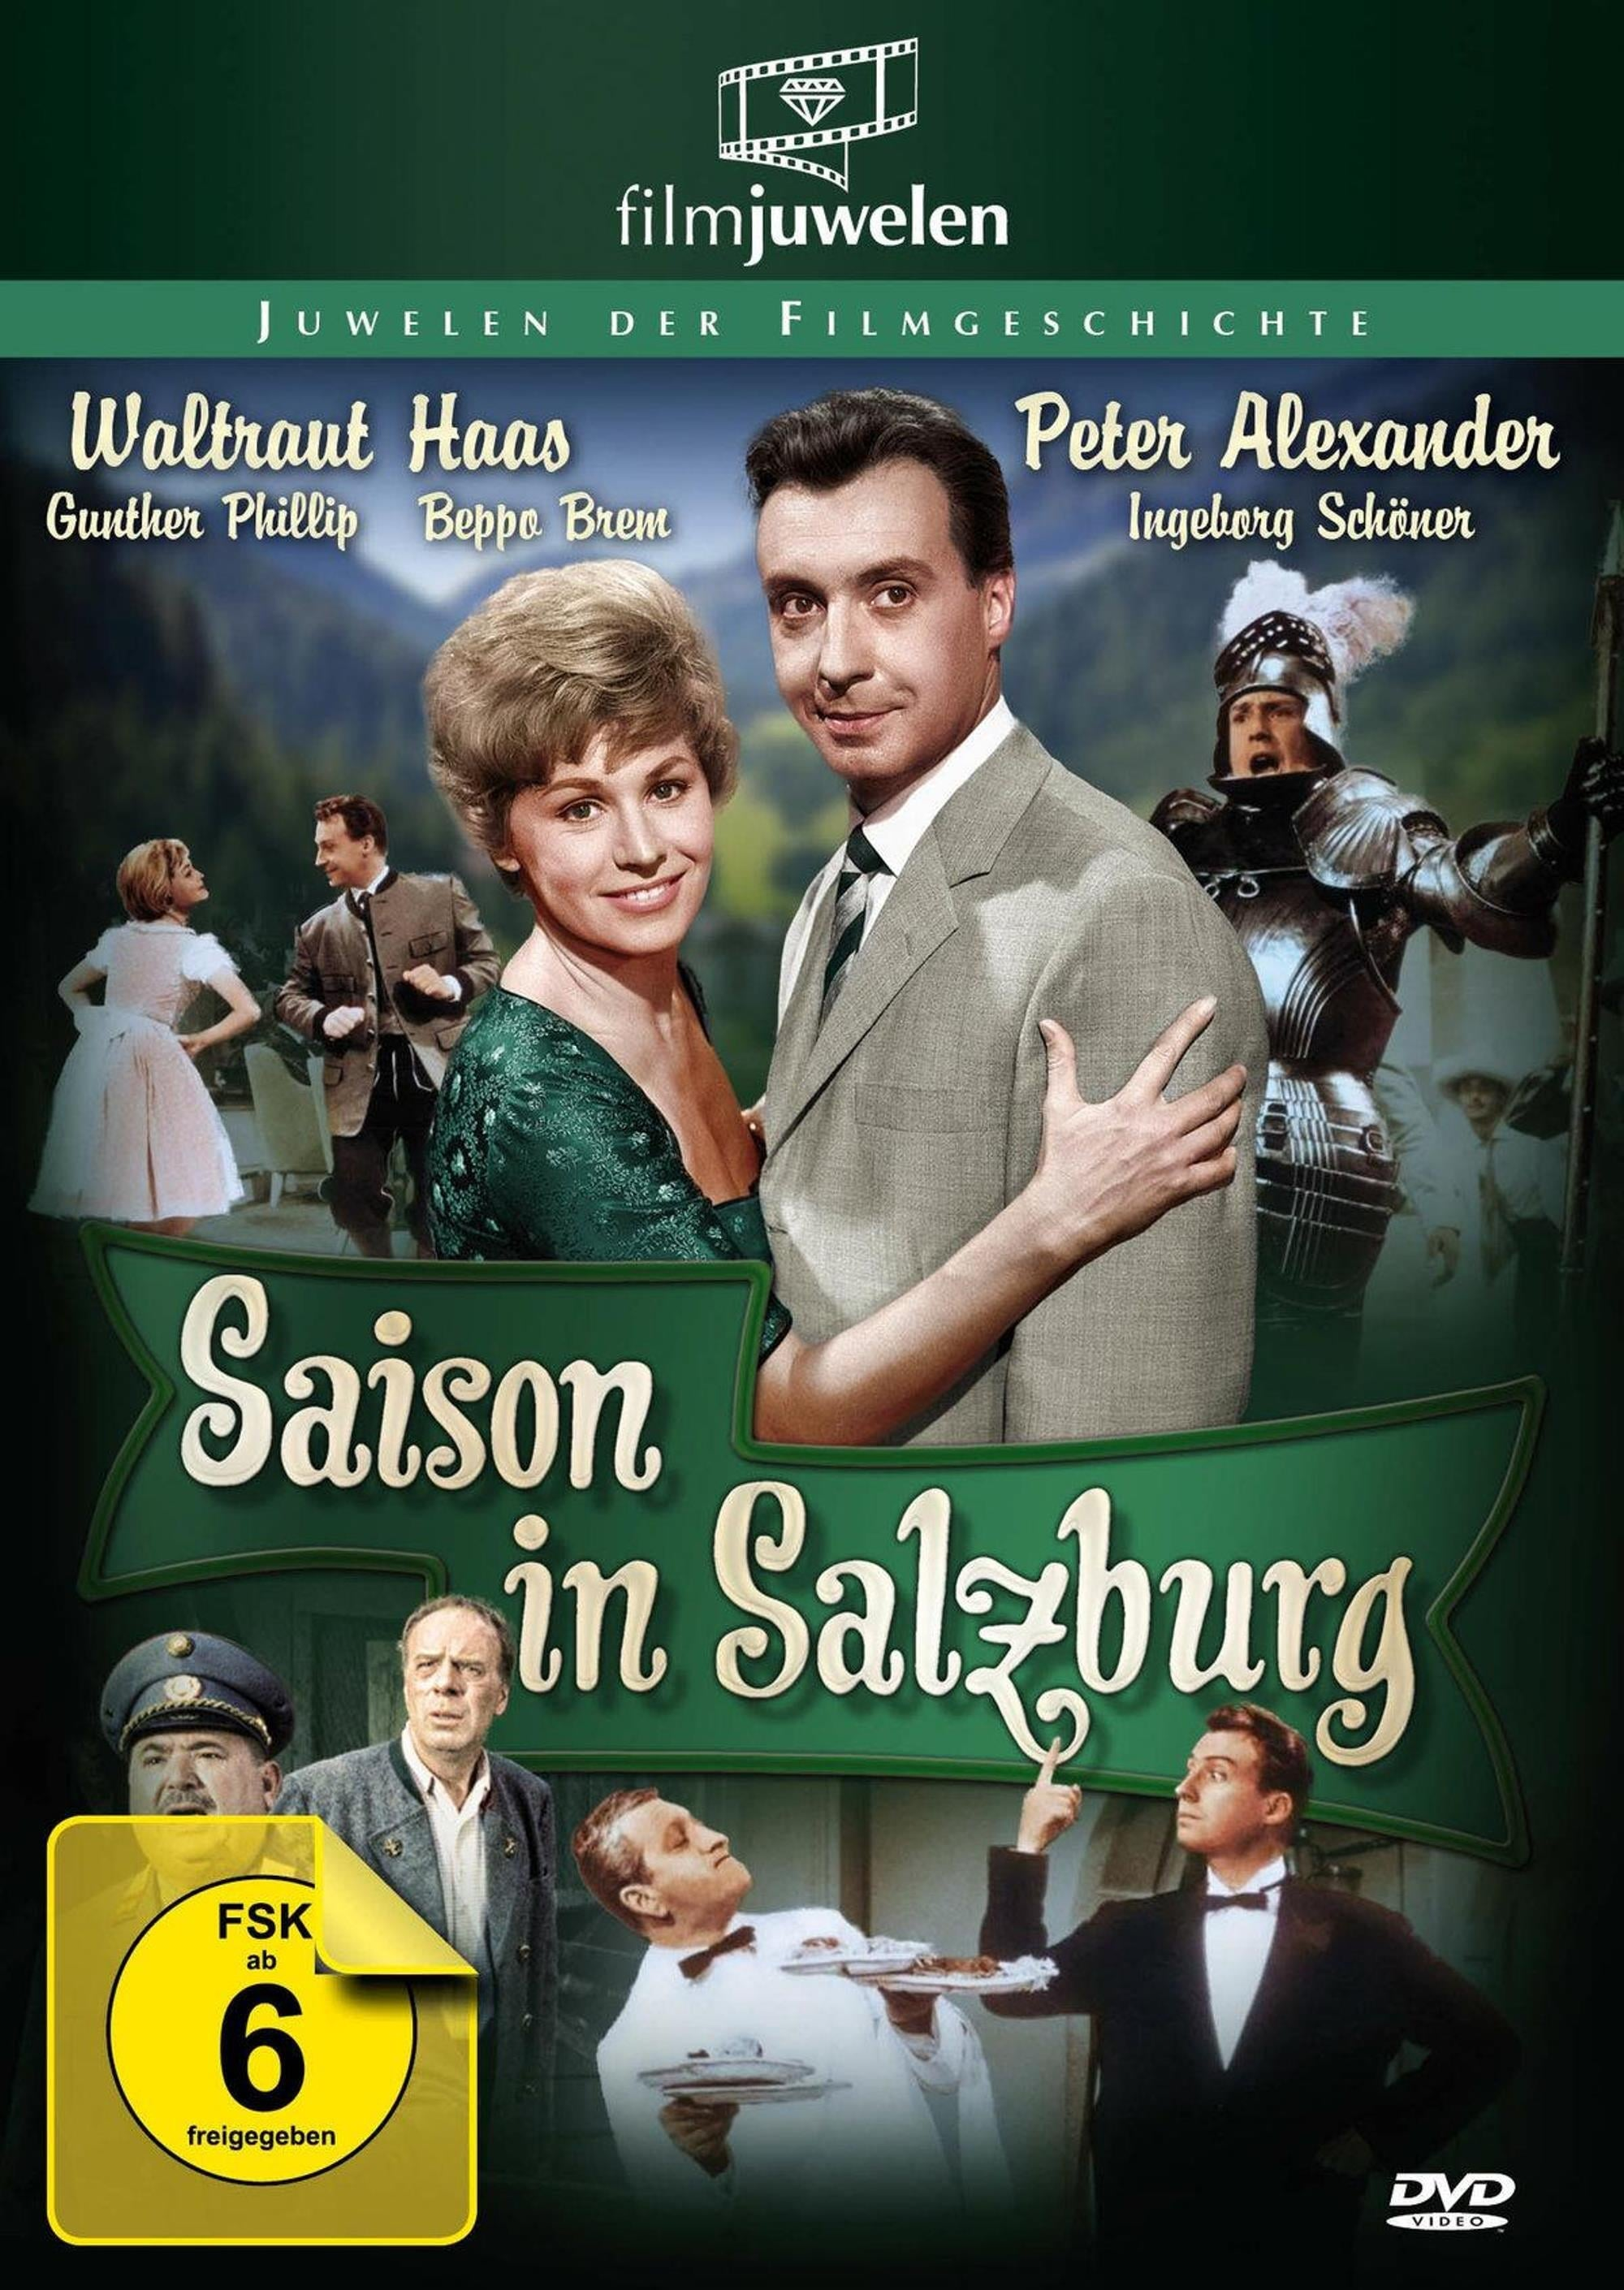 Schöner Film Season In Salzburg (1961) Movie. Where To Watch Streaming Online & Plot